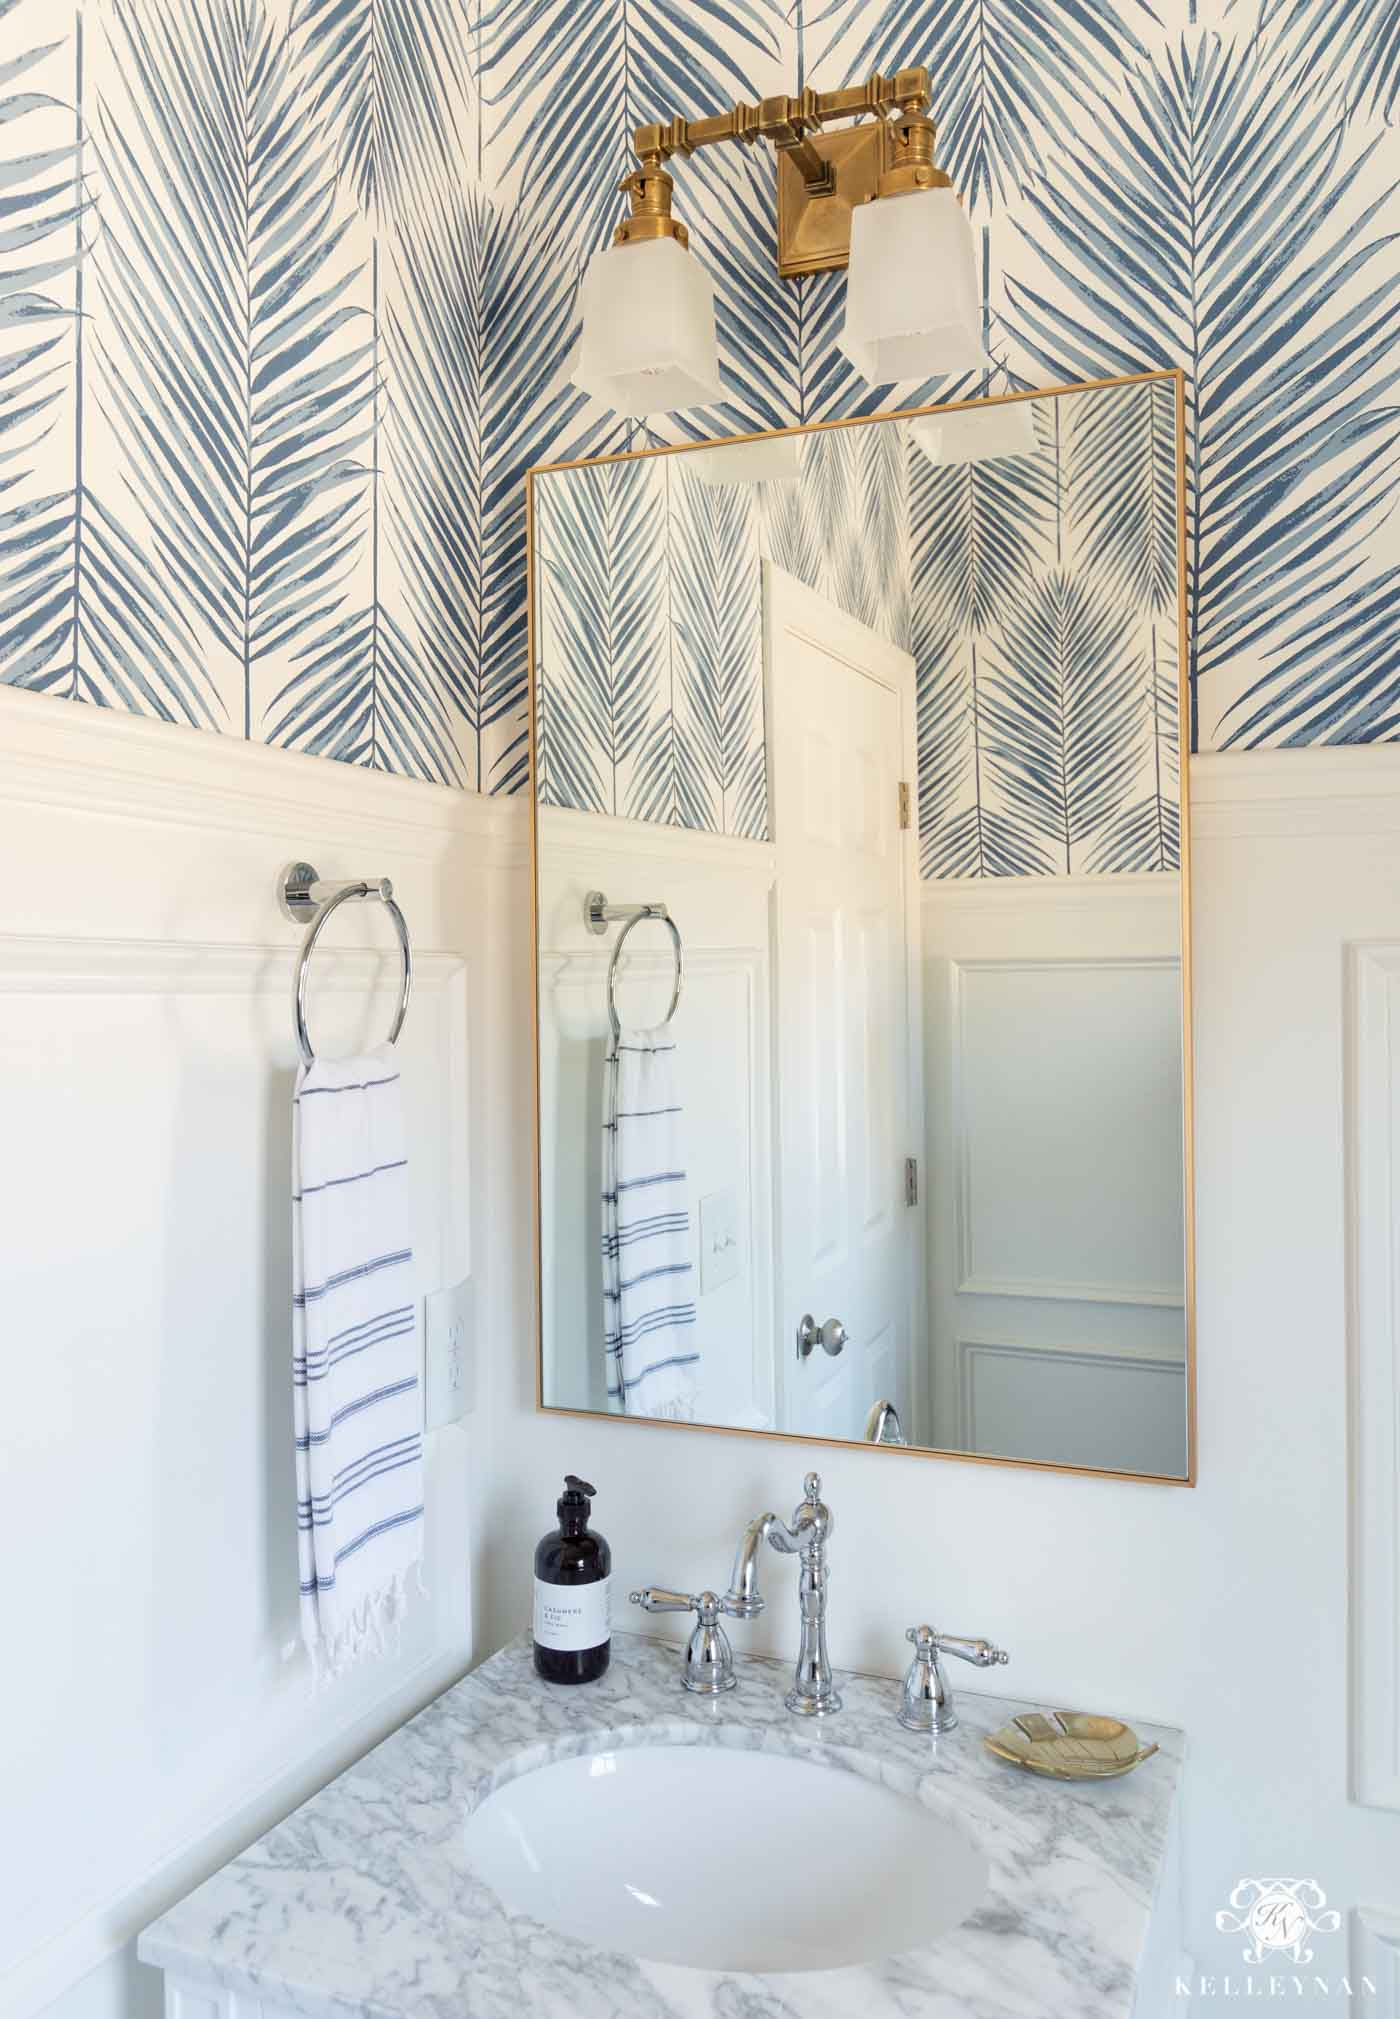 Modern Coastal Bathroom Design with Mixed Metals